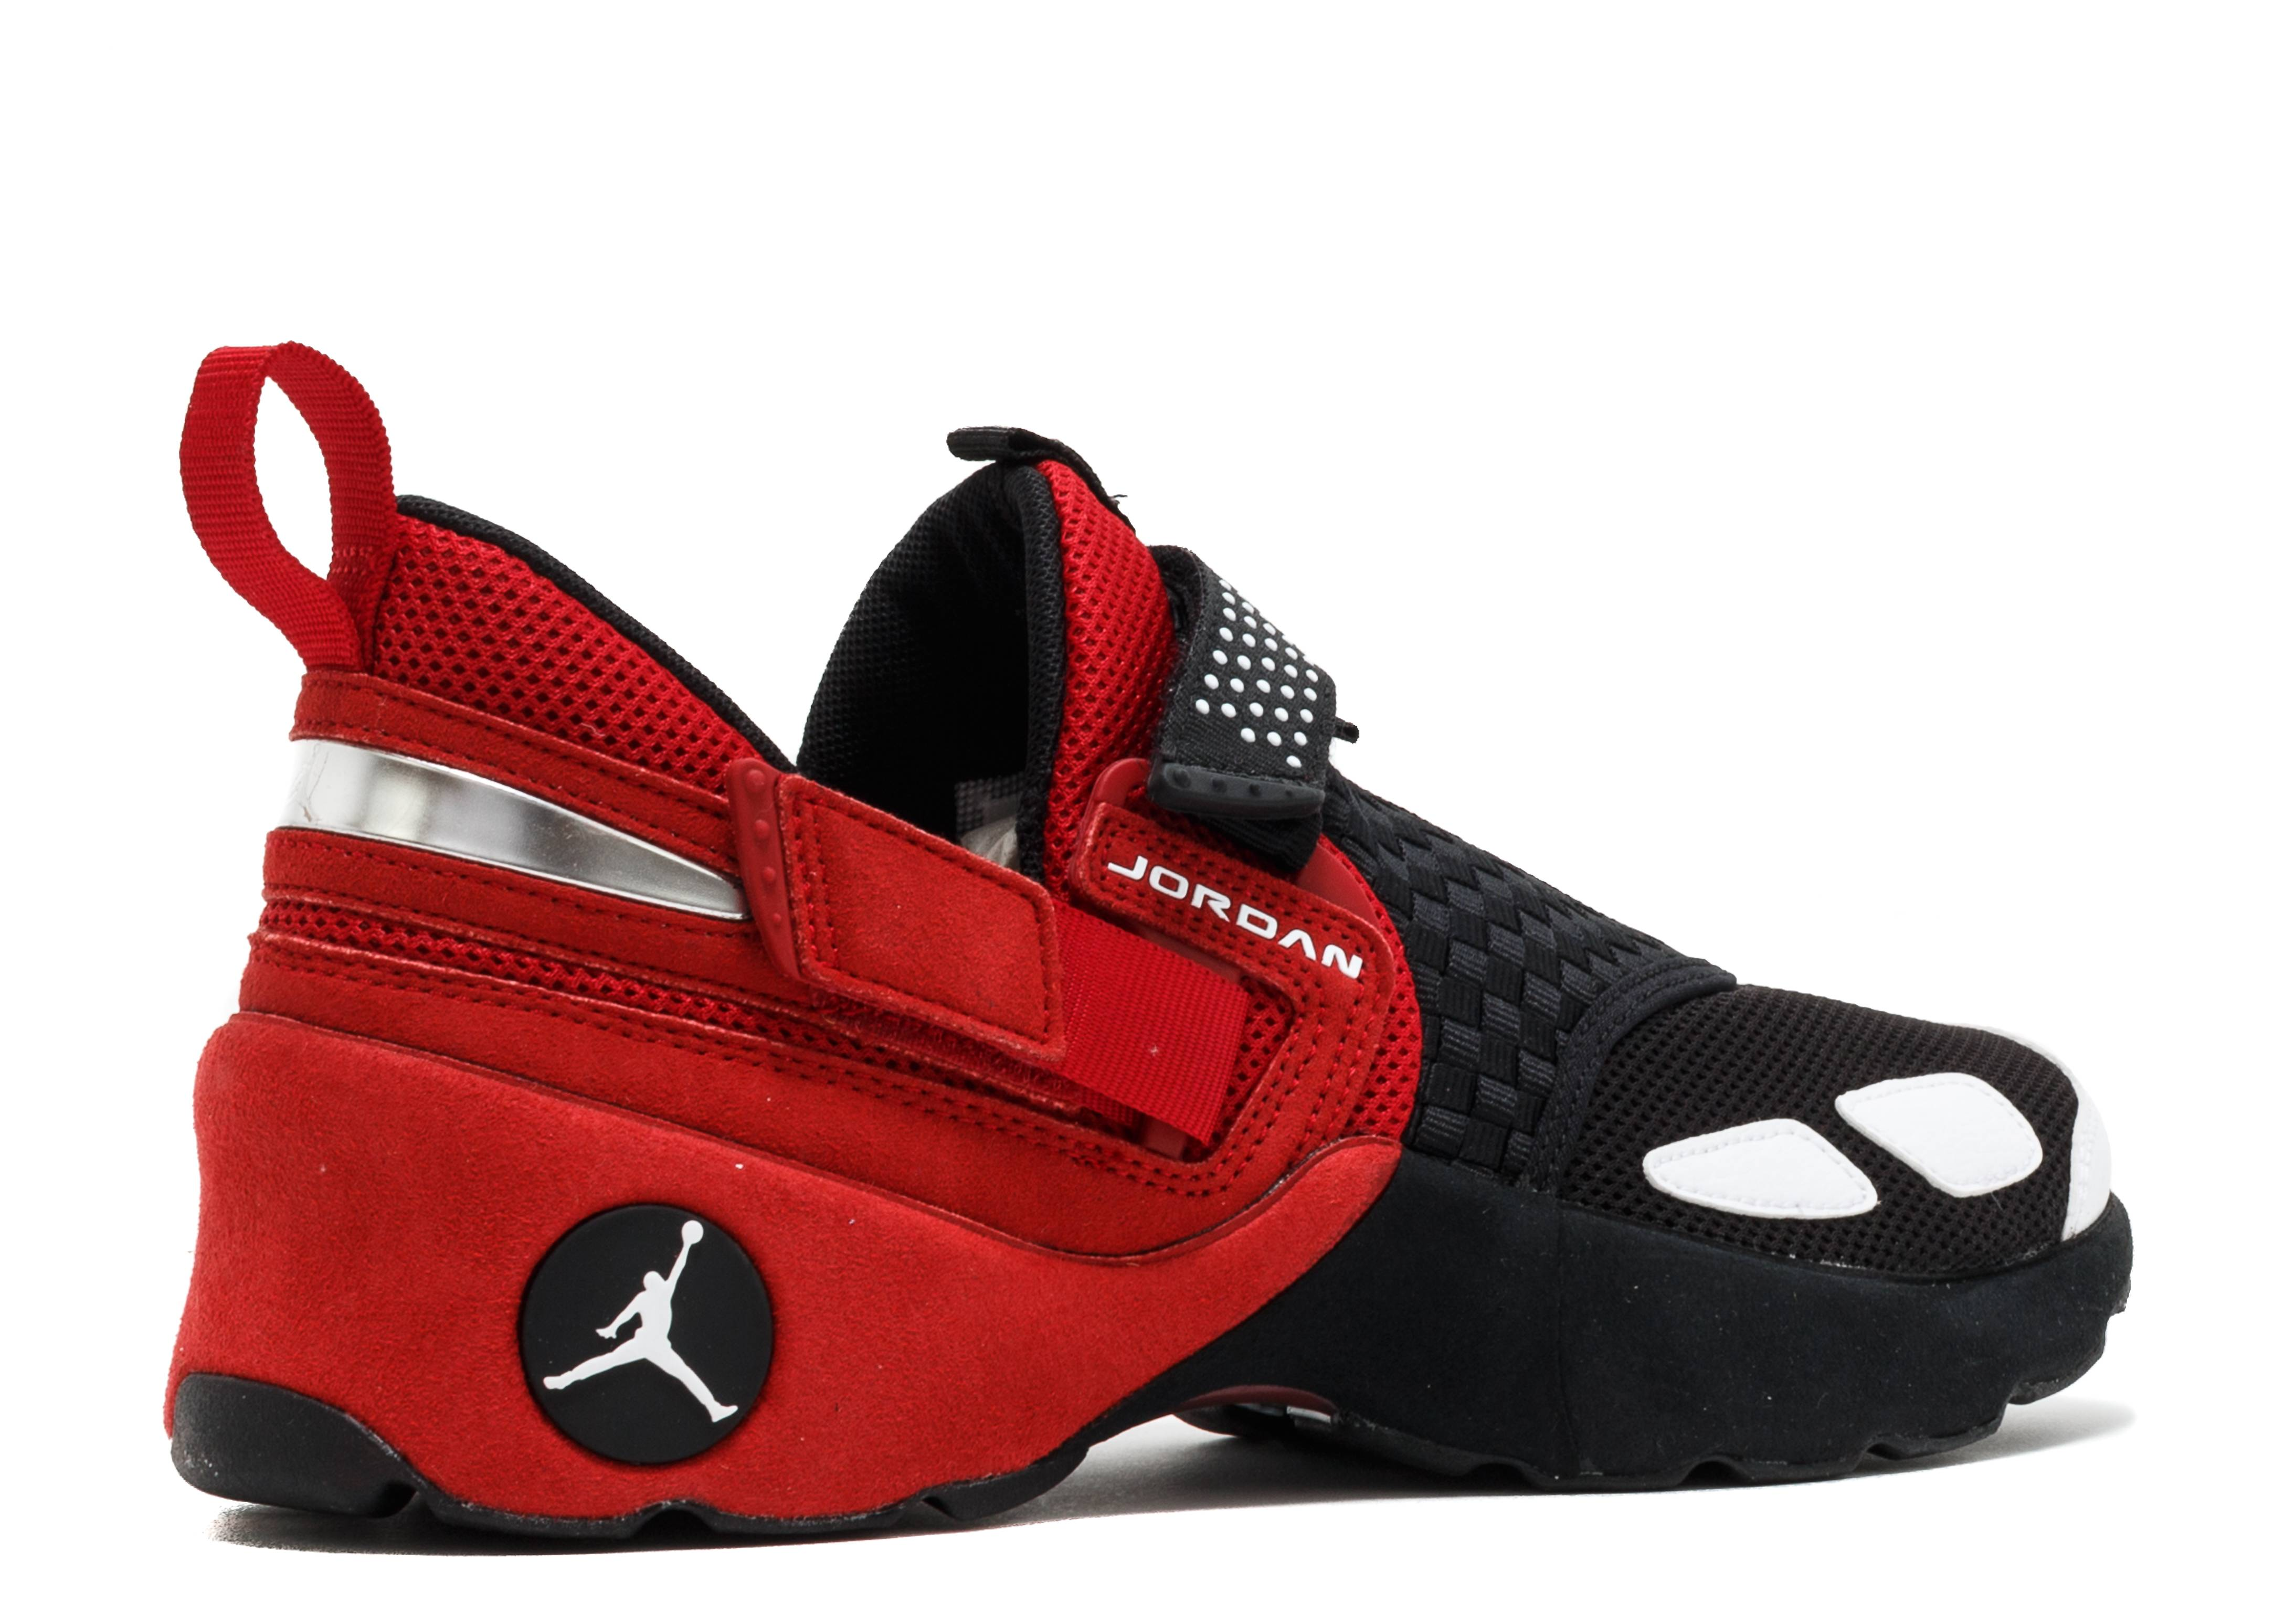 796bca68847 Air Jordan Trunner LX OG - Air Jordan - 905222 001 - black gym red-white